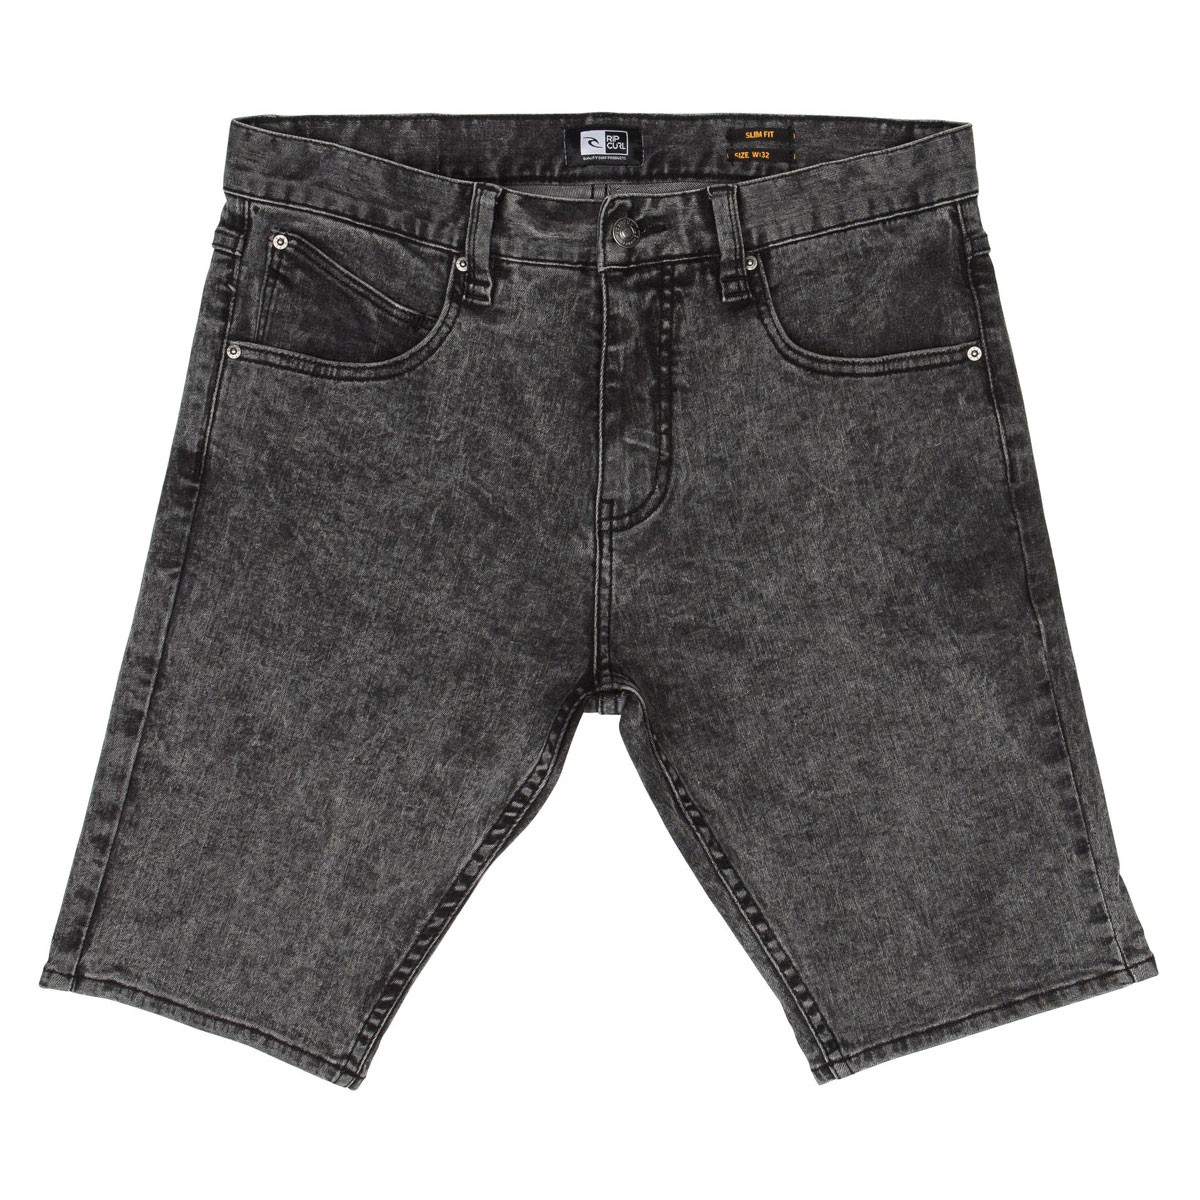 Kraťasy Rip Curl Mood Denim 19 black